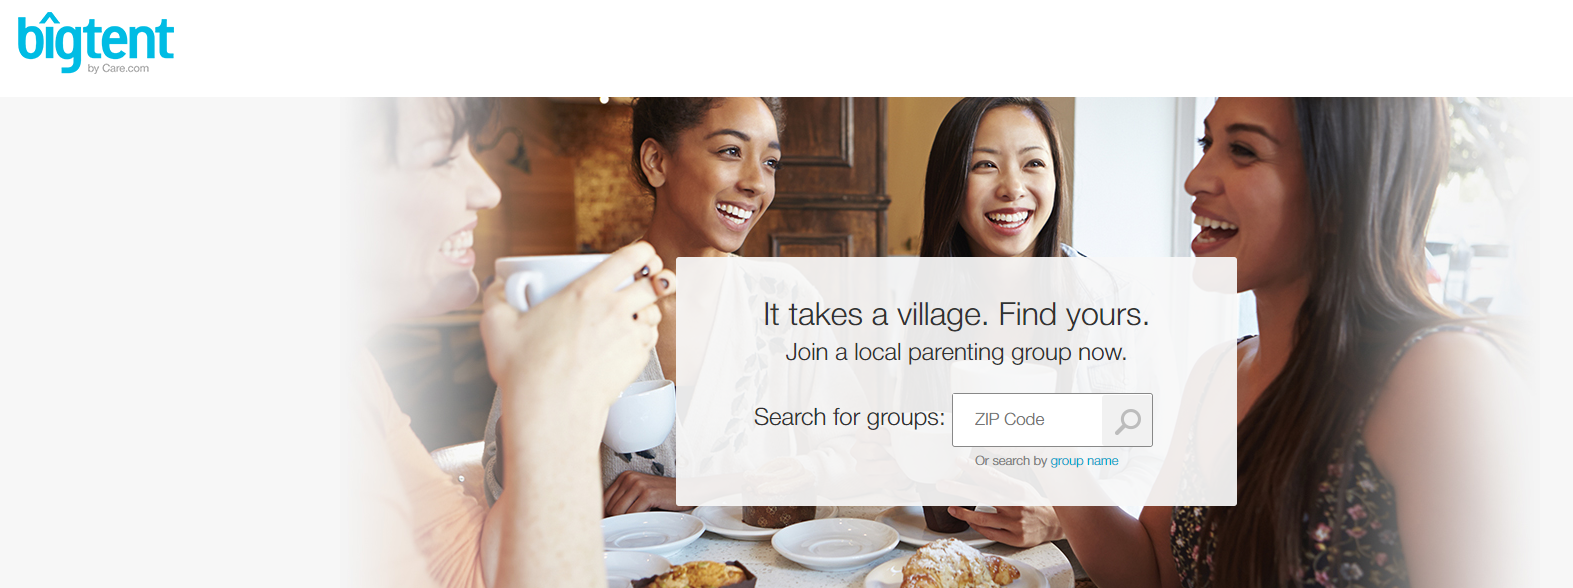 BigTent is a community-based membership platform that allows for interactions, payments, and more.